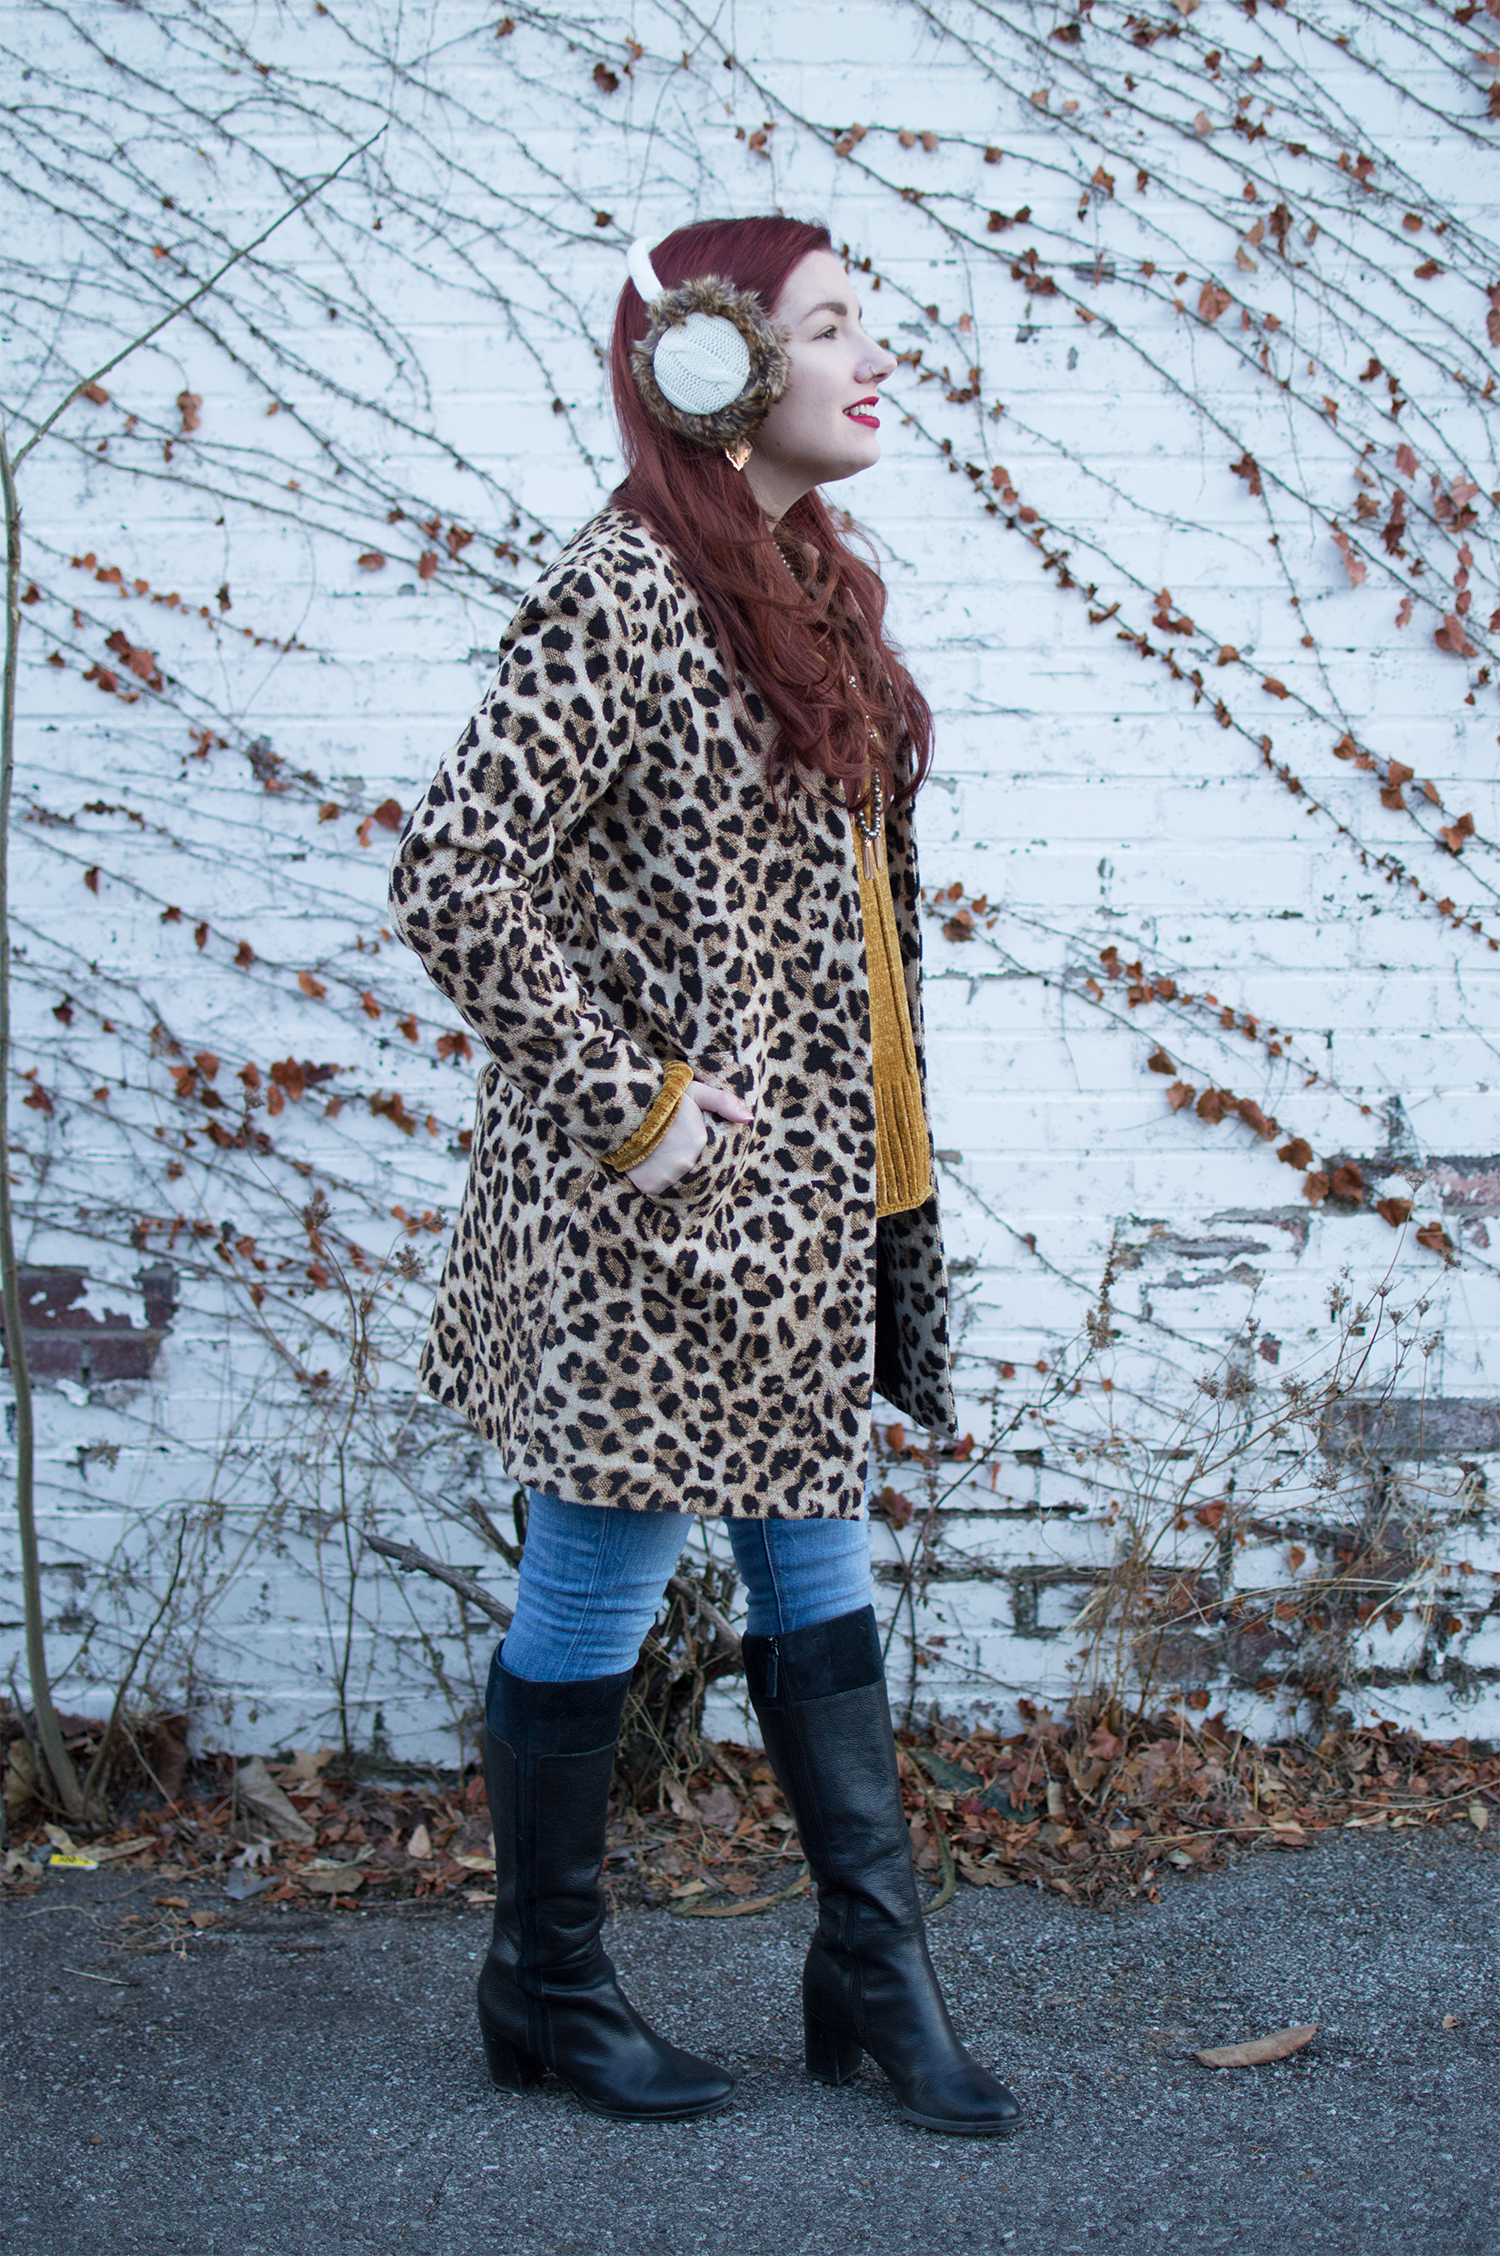 Winter Outfit Idea: Staying warm when it is REALLY cold with layers, leopard, and fuzzy earmuffs!